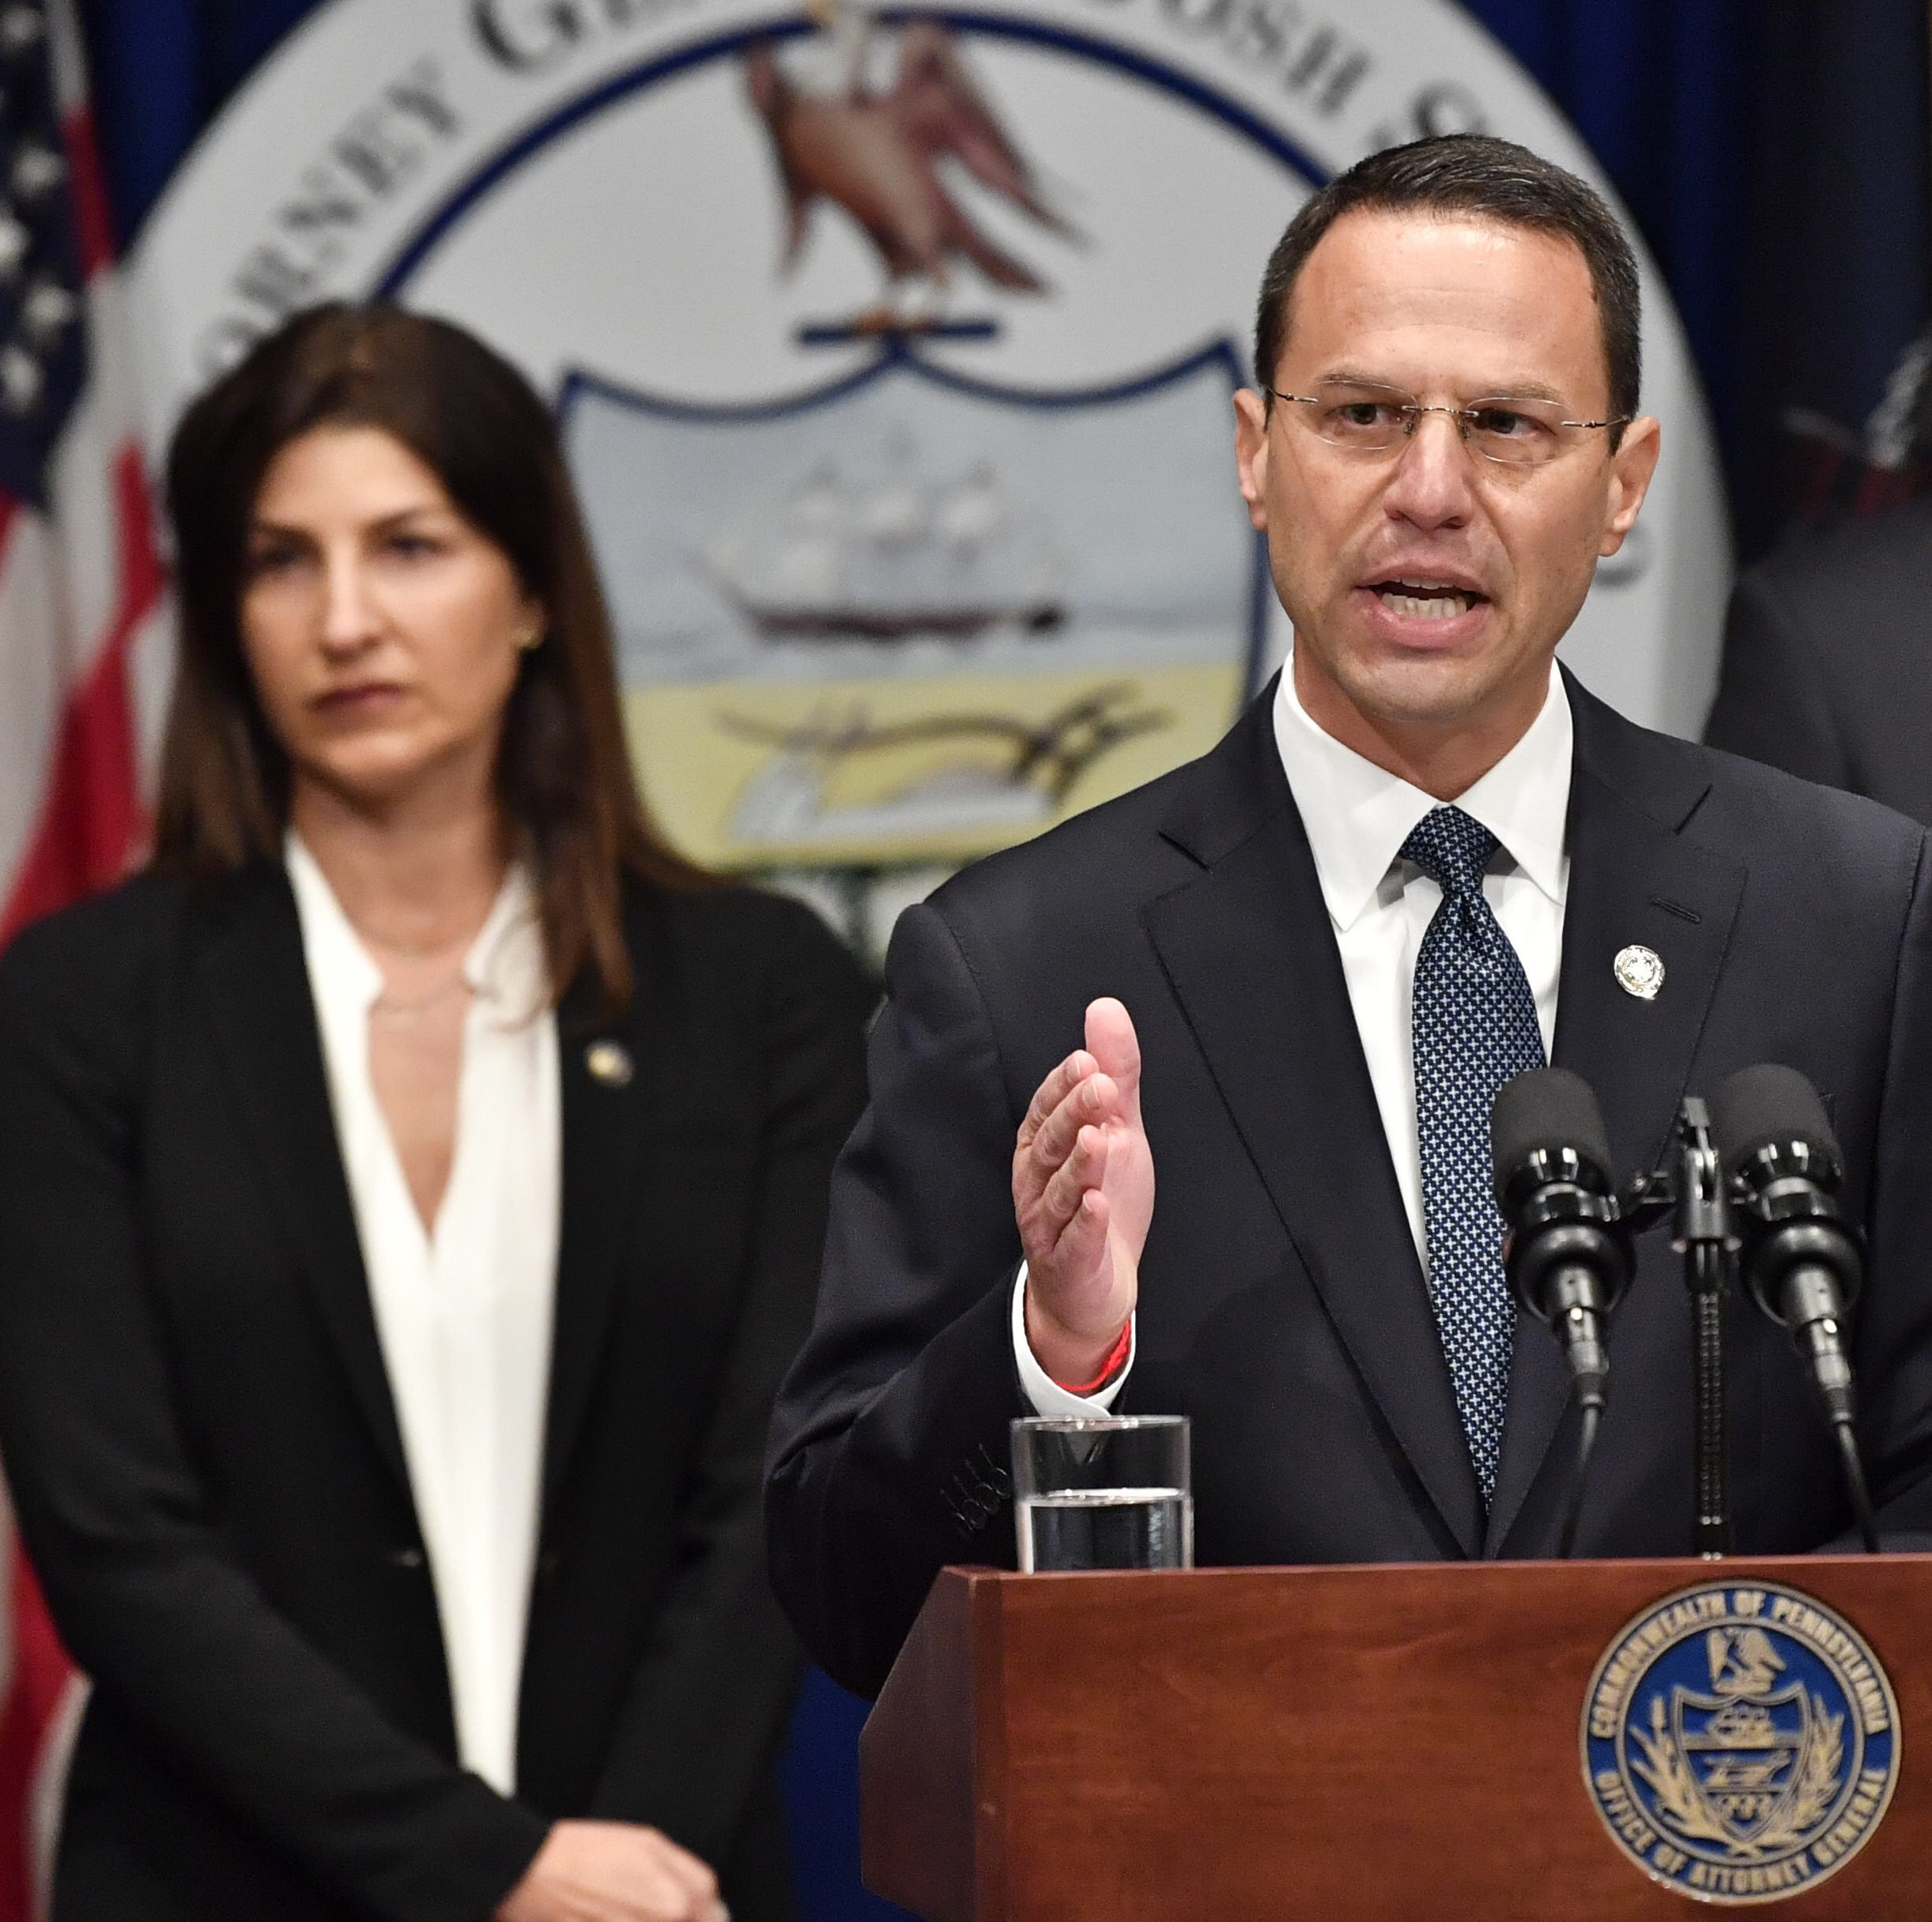 Watch live: Pa. attorney general talks about sweeping report on Catholic clergy abuse